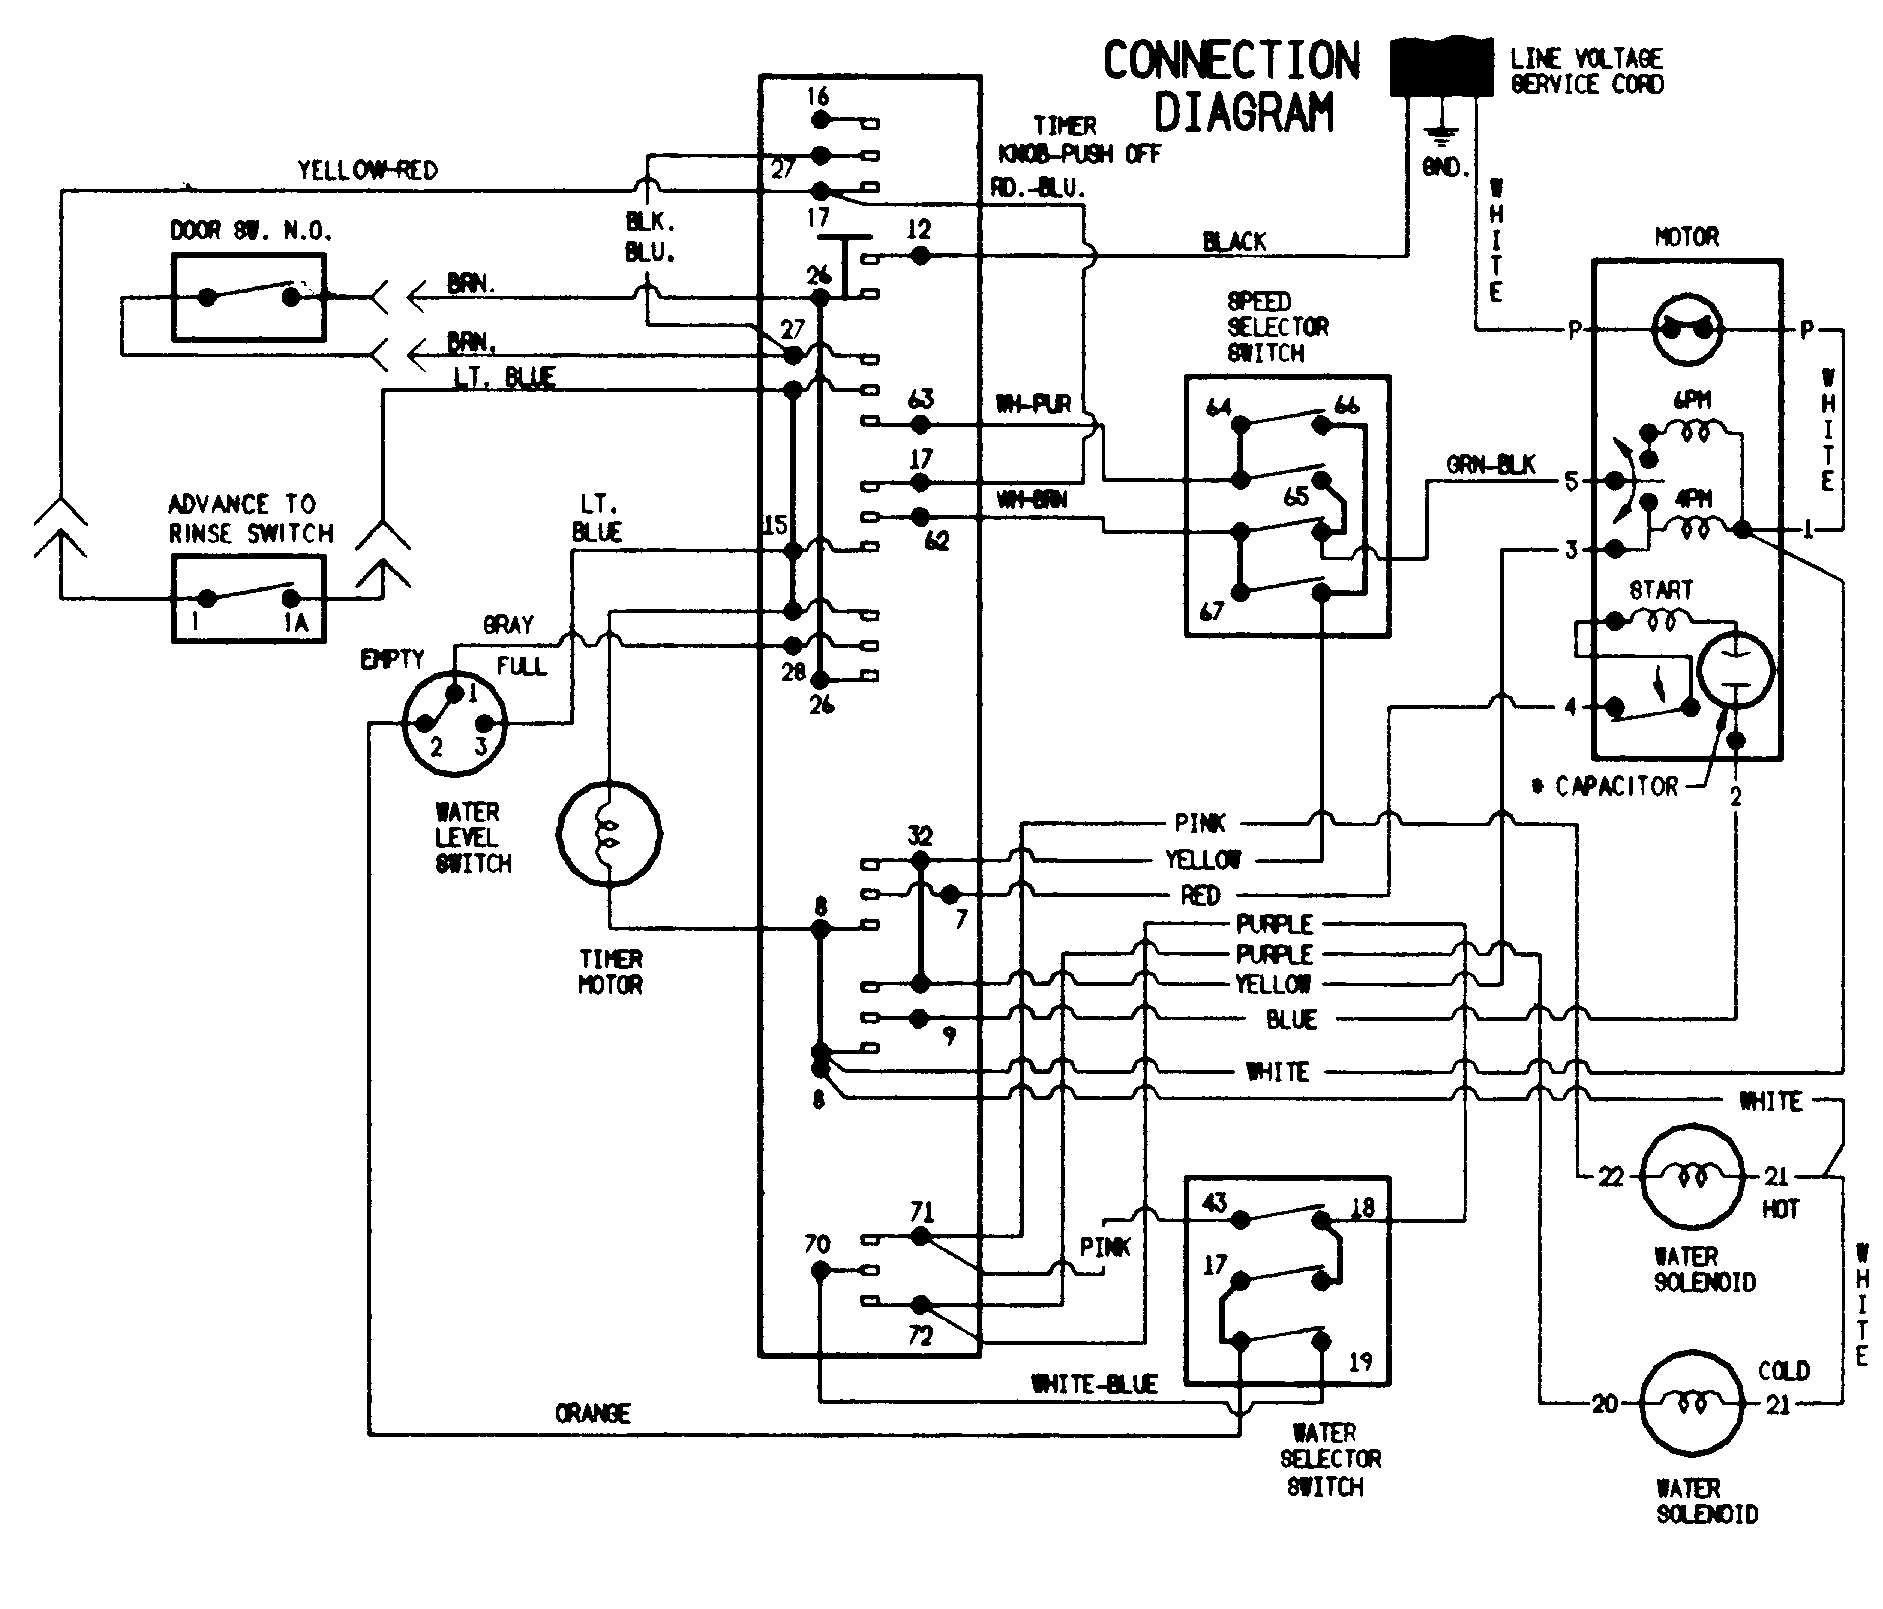 refrigerator wiring diagram pdf with Whirlpool Ler7620lw0 Wiring Diagram on Whirlpool Ler7620lw0 Wiring Diagram in addition Electric Fireplace Schematic as well Kitchenaid Superba Dishwasher Wiring Diagram additionally Transformer Wiring Color Code further Kenmore Washer 90 Wiring Diagram.